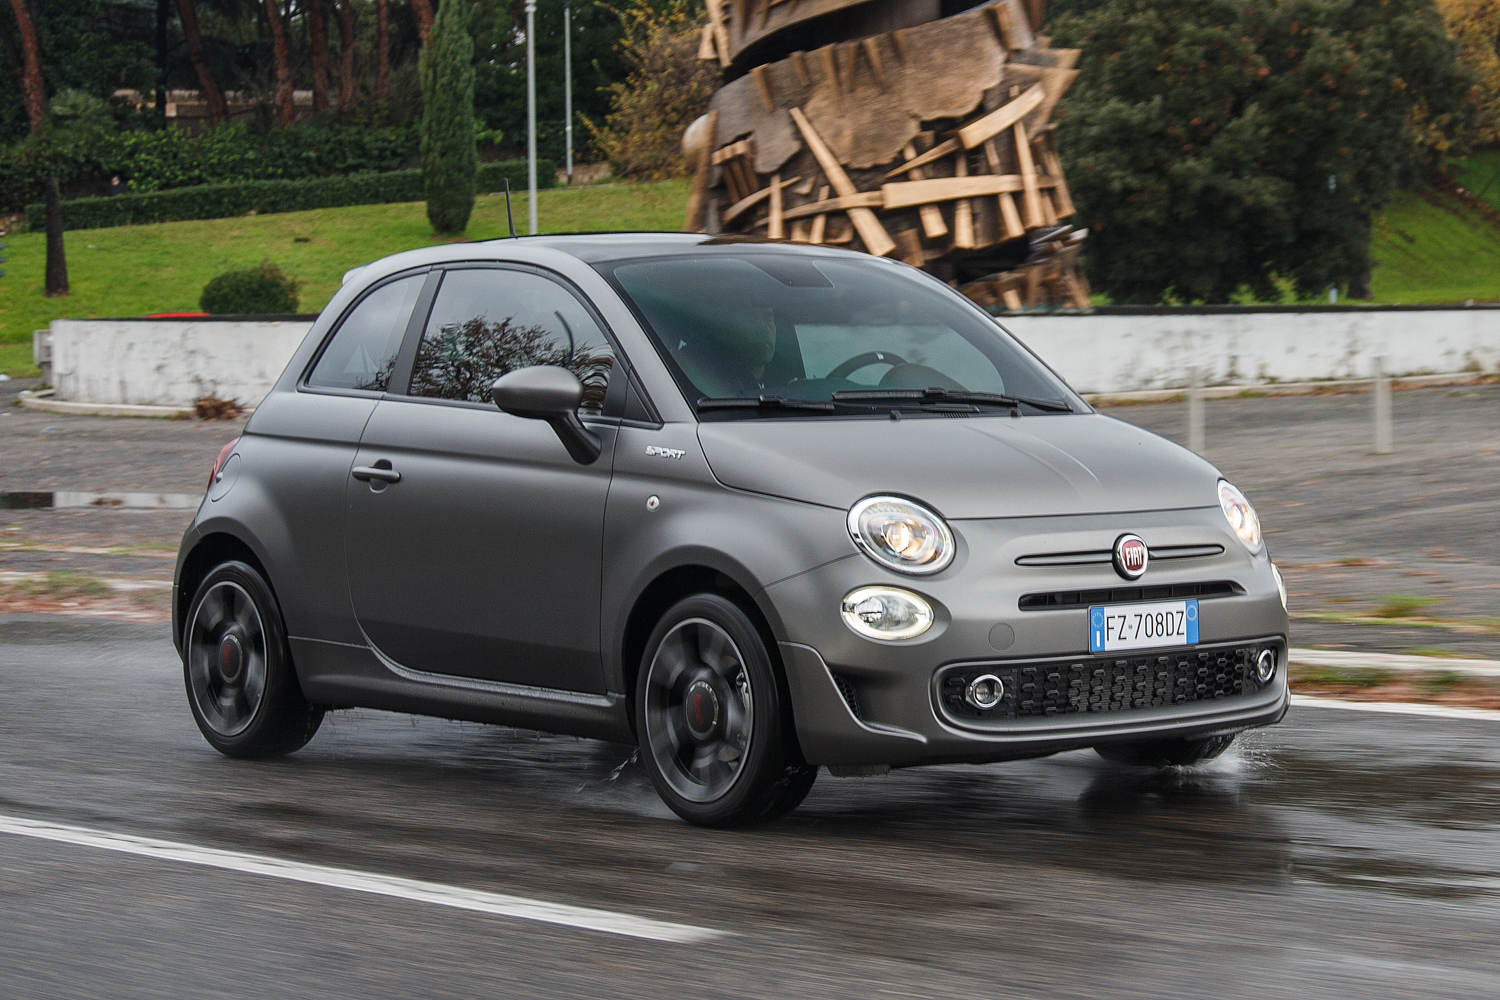 Fiat updates the 500 family for 2021